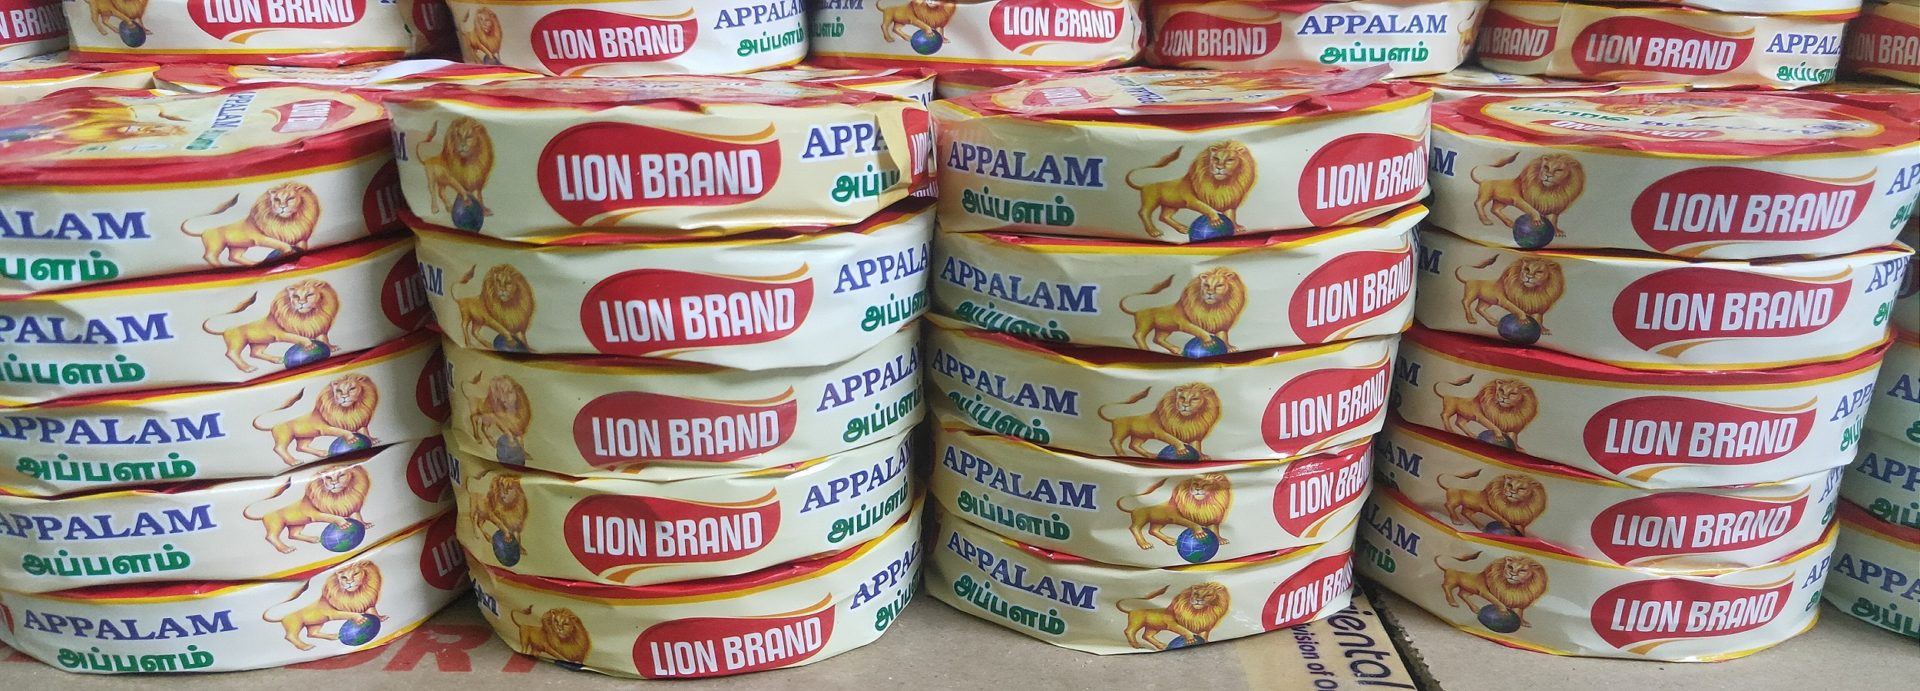 Lion brand appalam-150gm pack,Orange Appalam pack,, appalam manufacturers in india, papad manufacturers in india, appalam manufacturers in tamilnadu, papad manufacturers in tamilnadu, appalam manufacturers in madurai, papad manufacturers in madurai, appalam exporters in india, papad exporters in india, appalam exporters in tamilnadu, papad exporters in tamilnadu, appalam exporters in madurai, papad exporters in madurai, appalam wholesalers in india, papad wholesalers in india, appalam wholesalers in tamilnadu, papad wholesalers in tamilnadu, appalam wholesalers in madurai, papad wholesalers in madurai, appalam distributors in india, papad distributors in india, appalam distributors in tamilnadu, papad distributors in tamilnadu, appalam distributors in madurai, papad distributors in madurai, appalam suppliers in india, papad suppliers in india, appalam suppliers in tamilnadu, papad suppliers in tamilnadu, appalam suppliers in madurai, papad suppliers in madurai, appalam dealers in india, papad dealers in india, appalam dealers in tamilnadu, papad dealers in tamilnadu, appalam dealers in madurai, papad dealers in madurai, appalam companies in india, appalam companies in tamilnadu, appalam companies in madurai, papad companies in india, papad companies in tamilnadu, papad companies in madurai, appalam company in india, appalam company in tamilnadu, appalam company in madurai, papad company in india, papad company in tamilnadu, papad company in madurai, appalam factory in india, appalam factory in tamilnadu, appalam factory in madurai, papad factory in india, papad factory in tamilnadu, papad factory in madurai, appalam factories in india, appalam factories in tamilnadu, appalam factories in madurai, papad factories in india, papad factories in tamilnadu, papad factories in madurai, appalam production units in india, appalam production units in tamilnadu, appalam production units in madurai, papad production units in india, papad production units in tamilnadu, papad pro